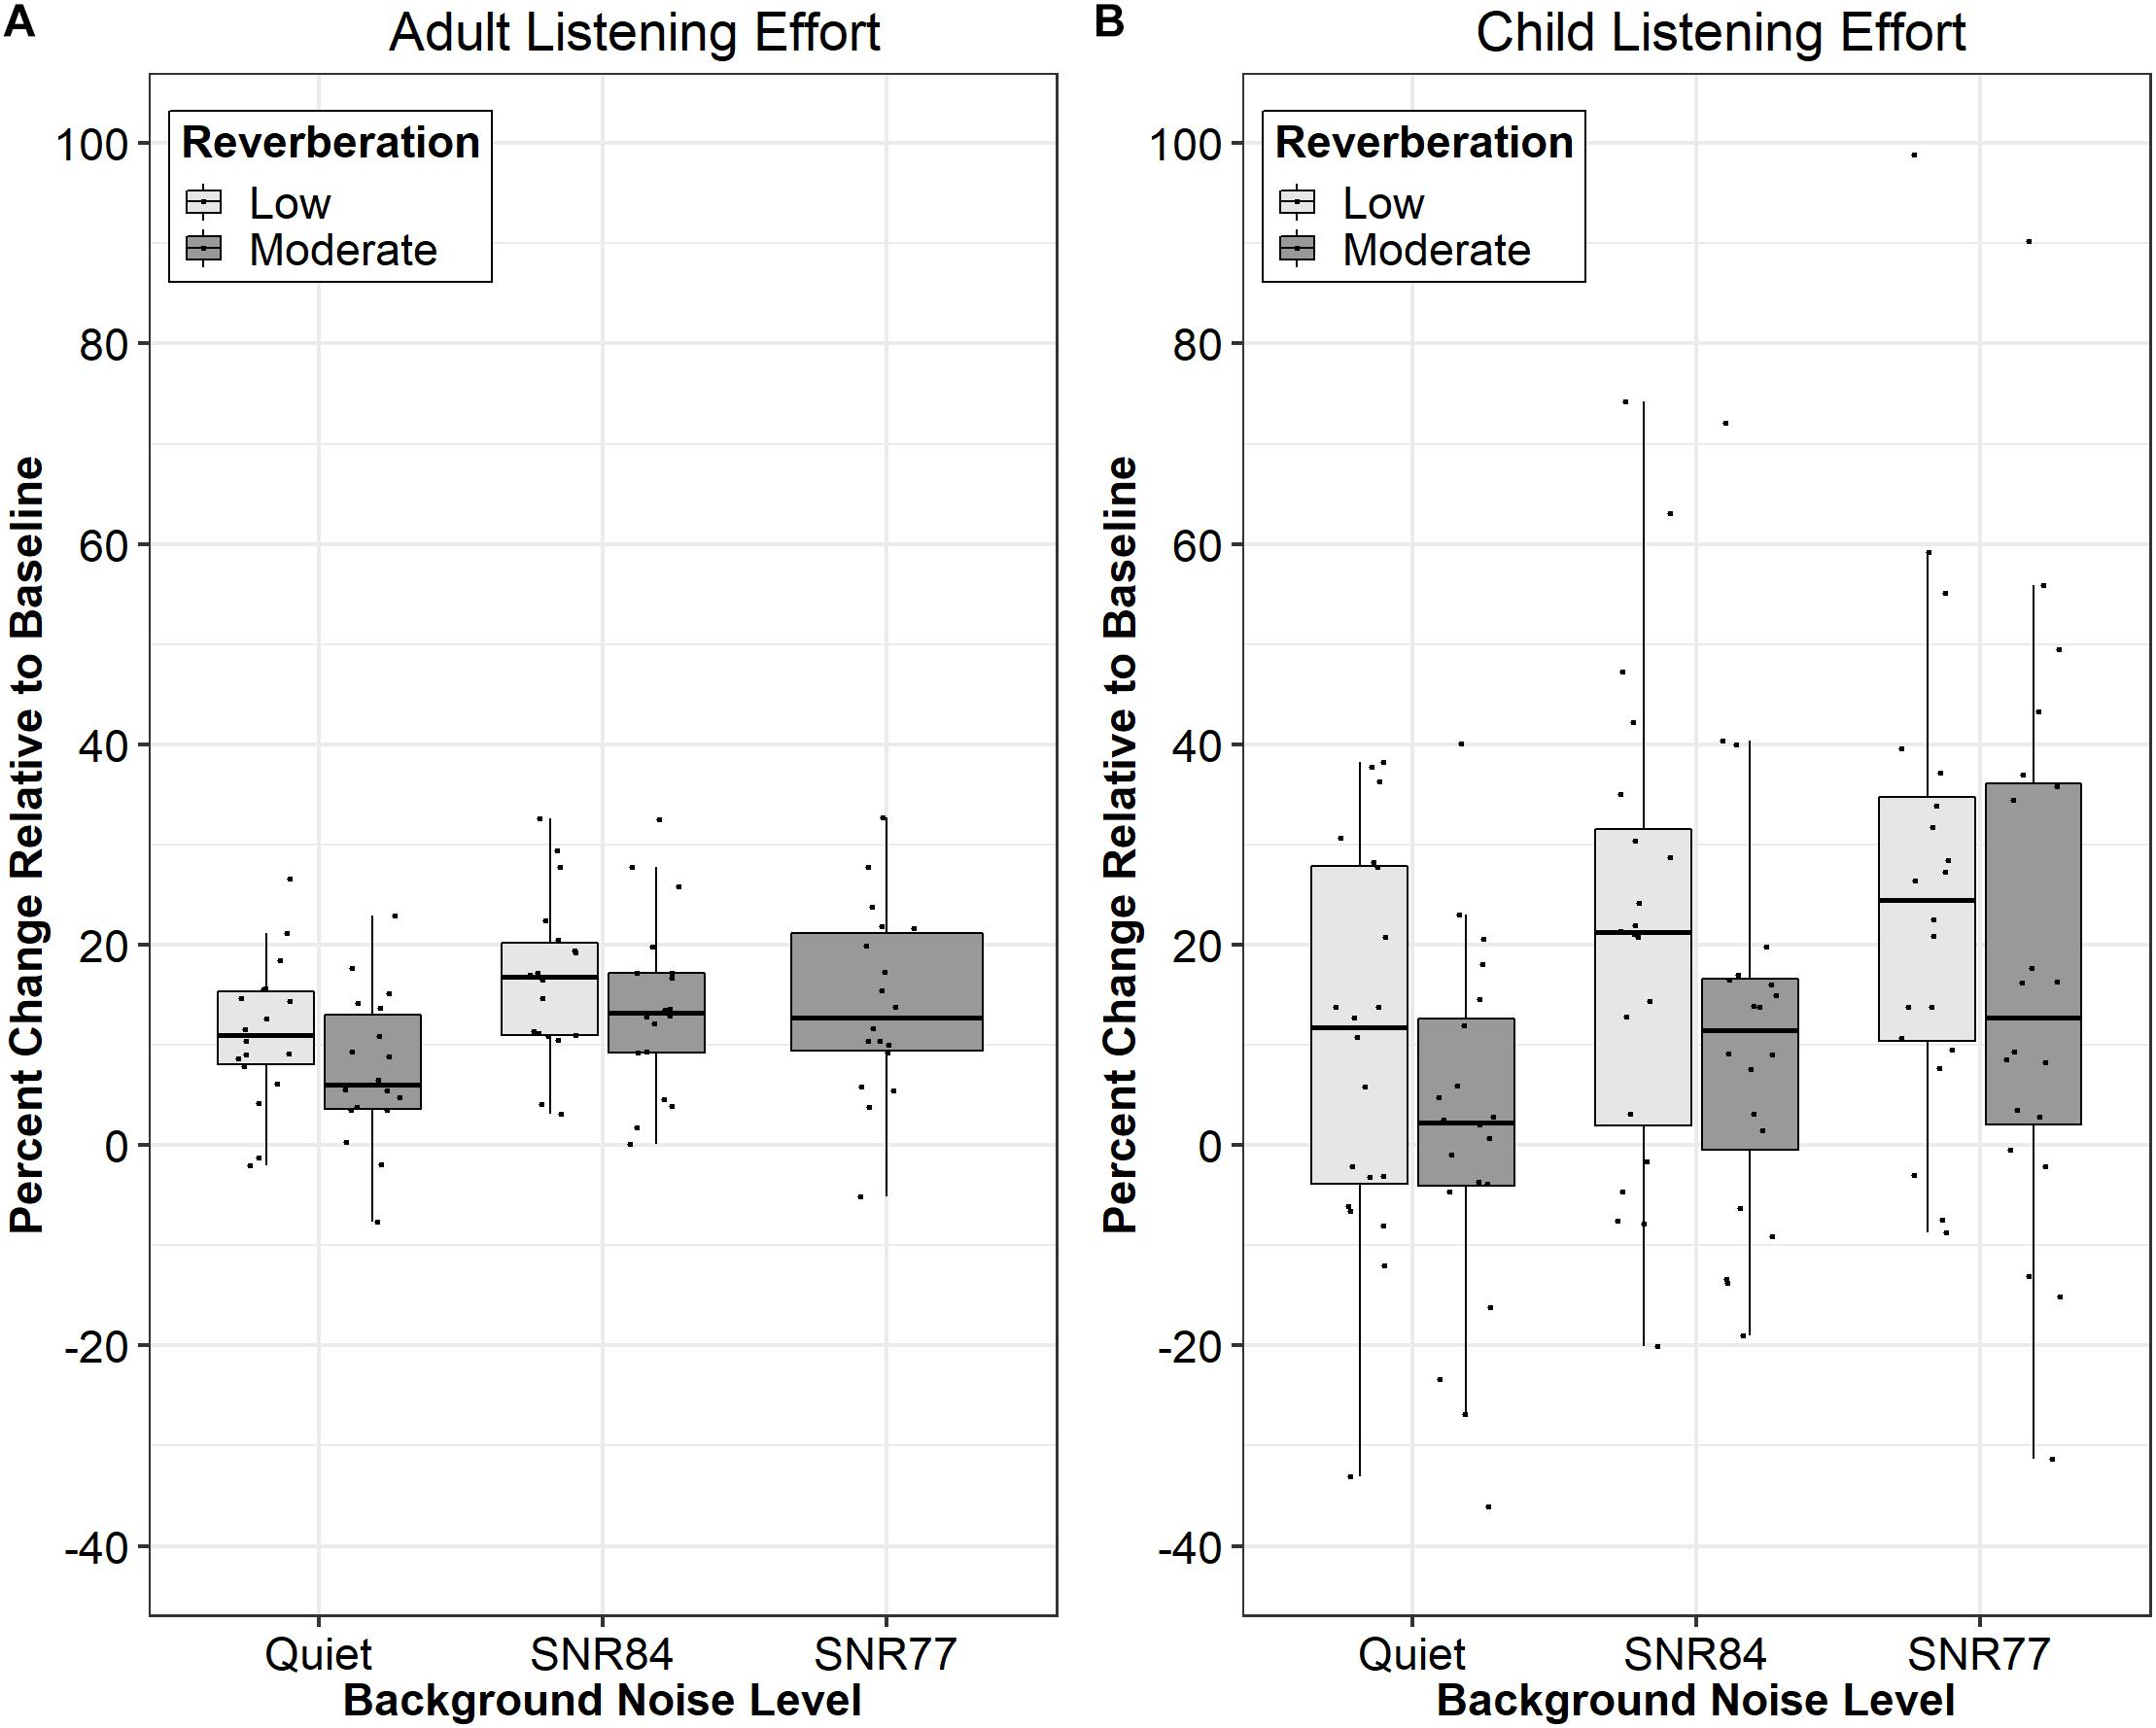 Frontiers | Moderate Reverberation Does Not Increase Subjective